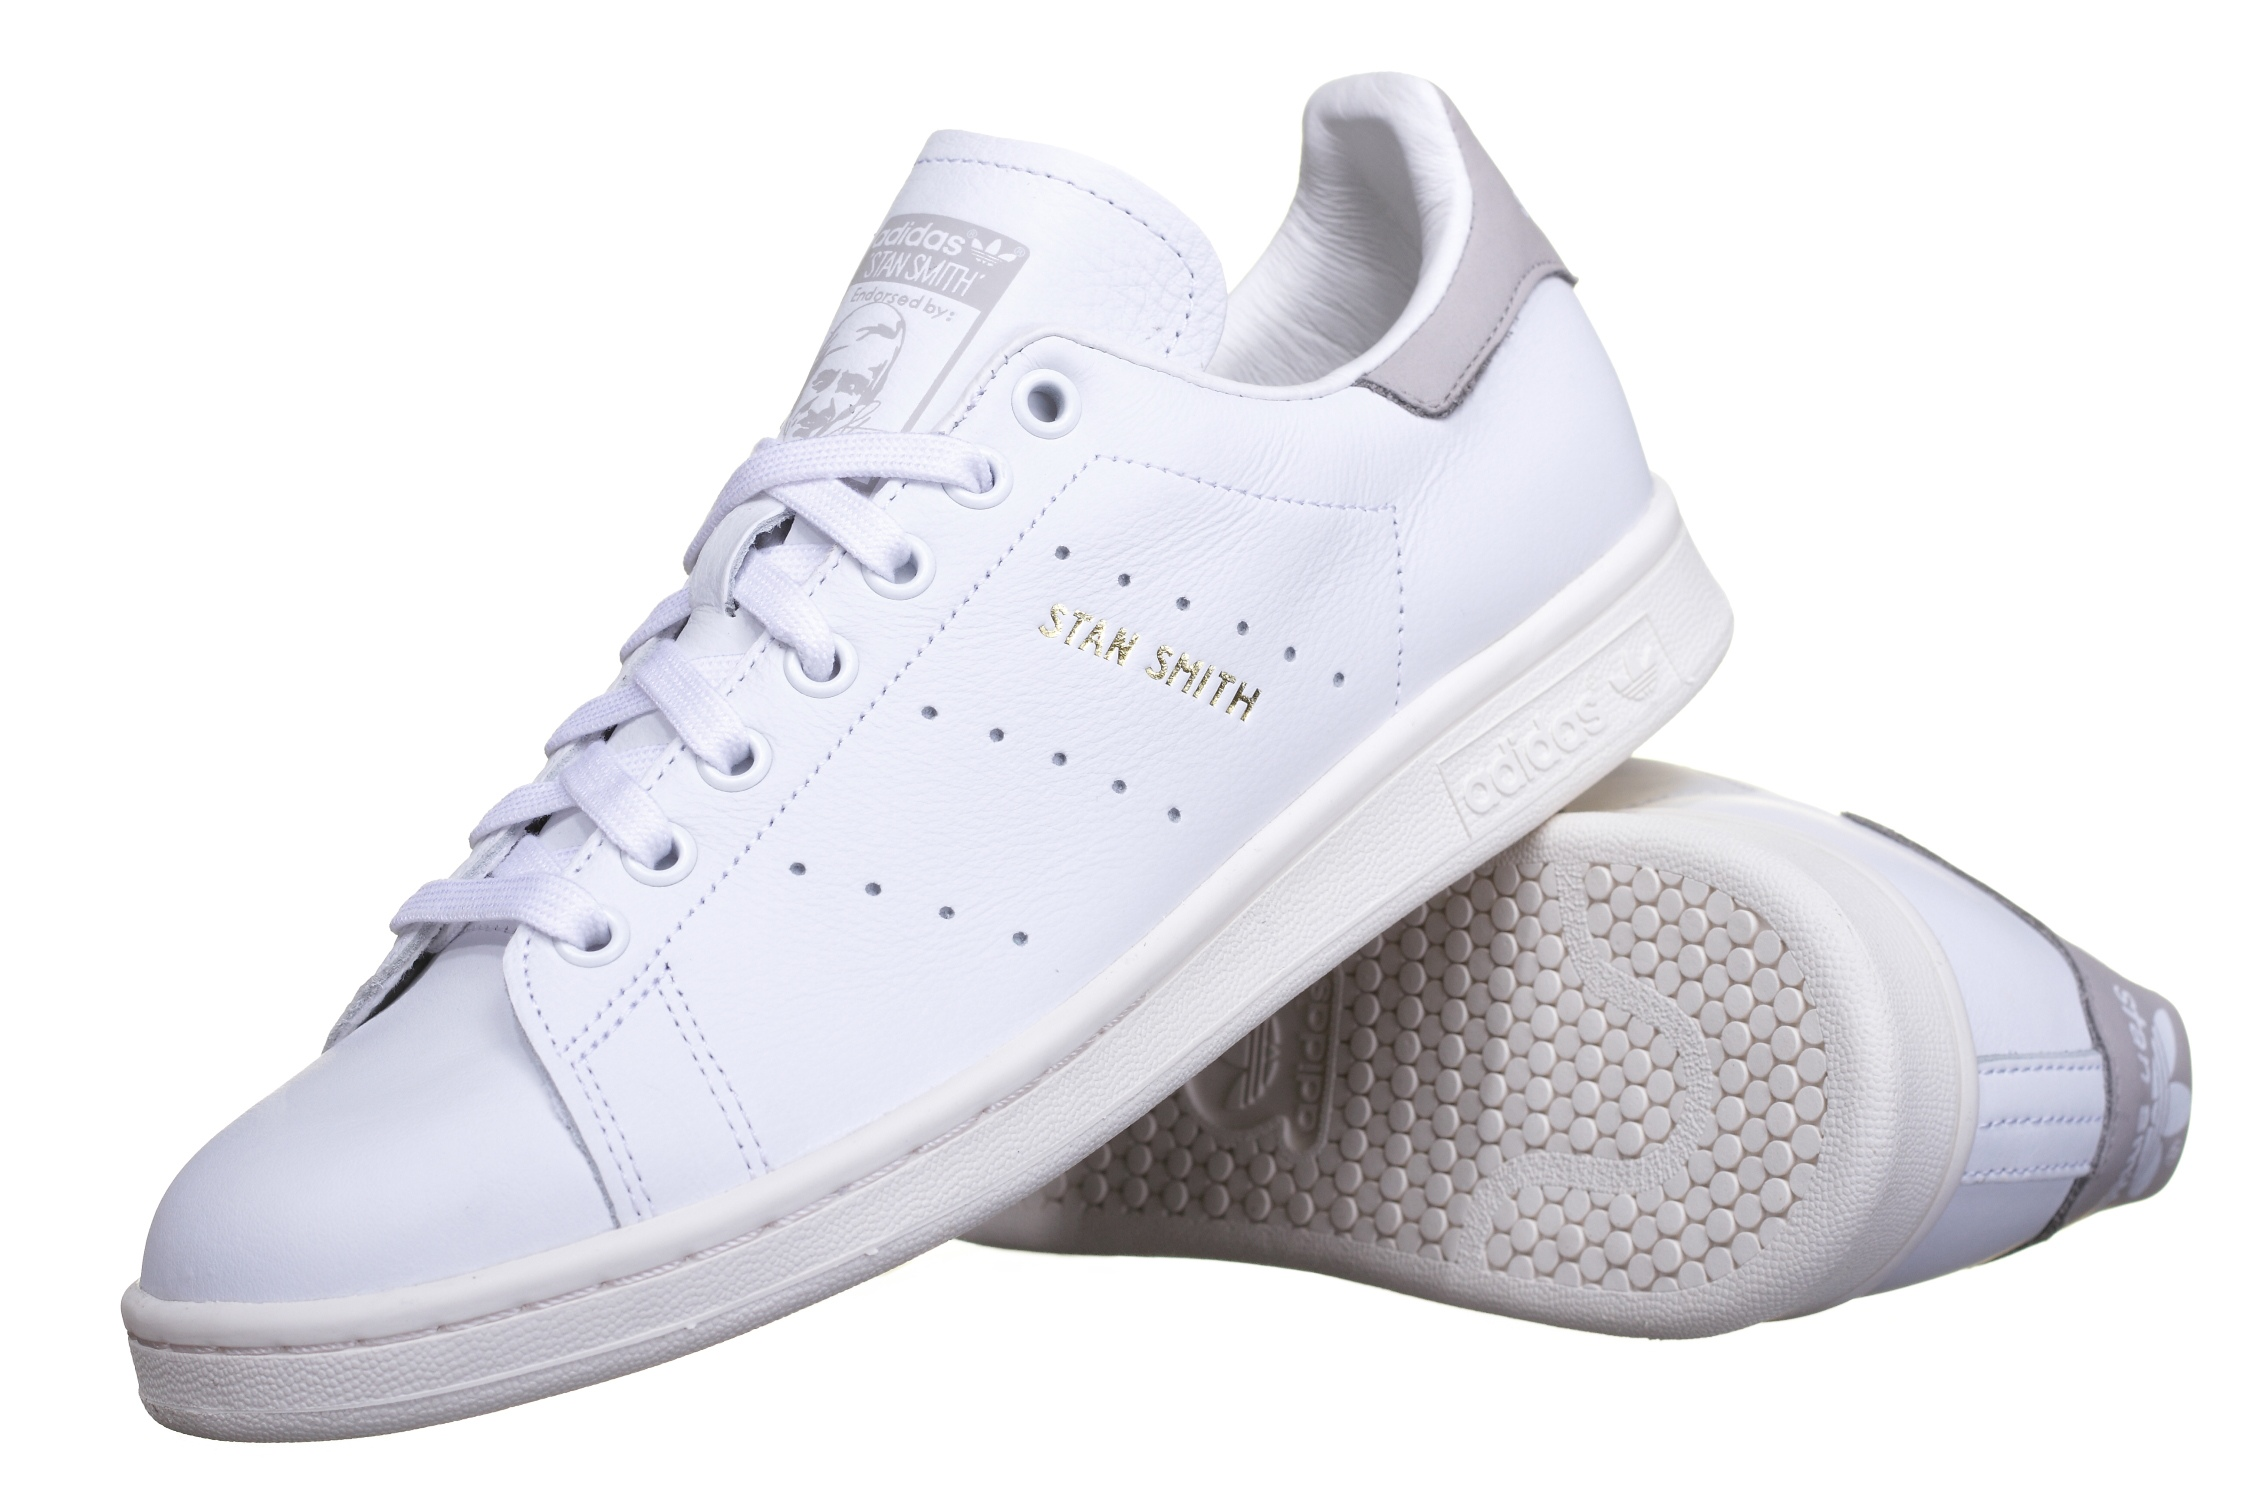 http://www.leadermode.com/88874/adidas-stan-smith-s75075-blanc-granite.jpg